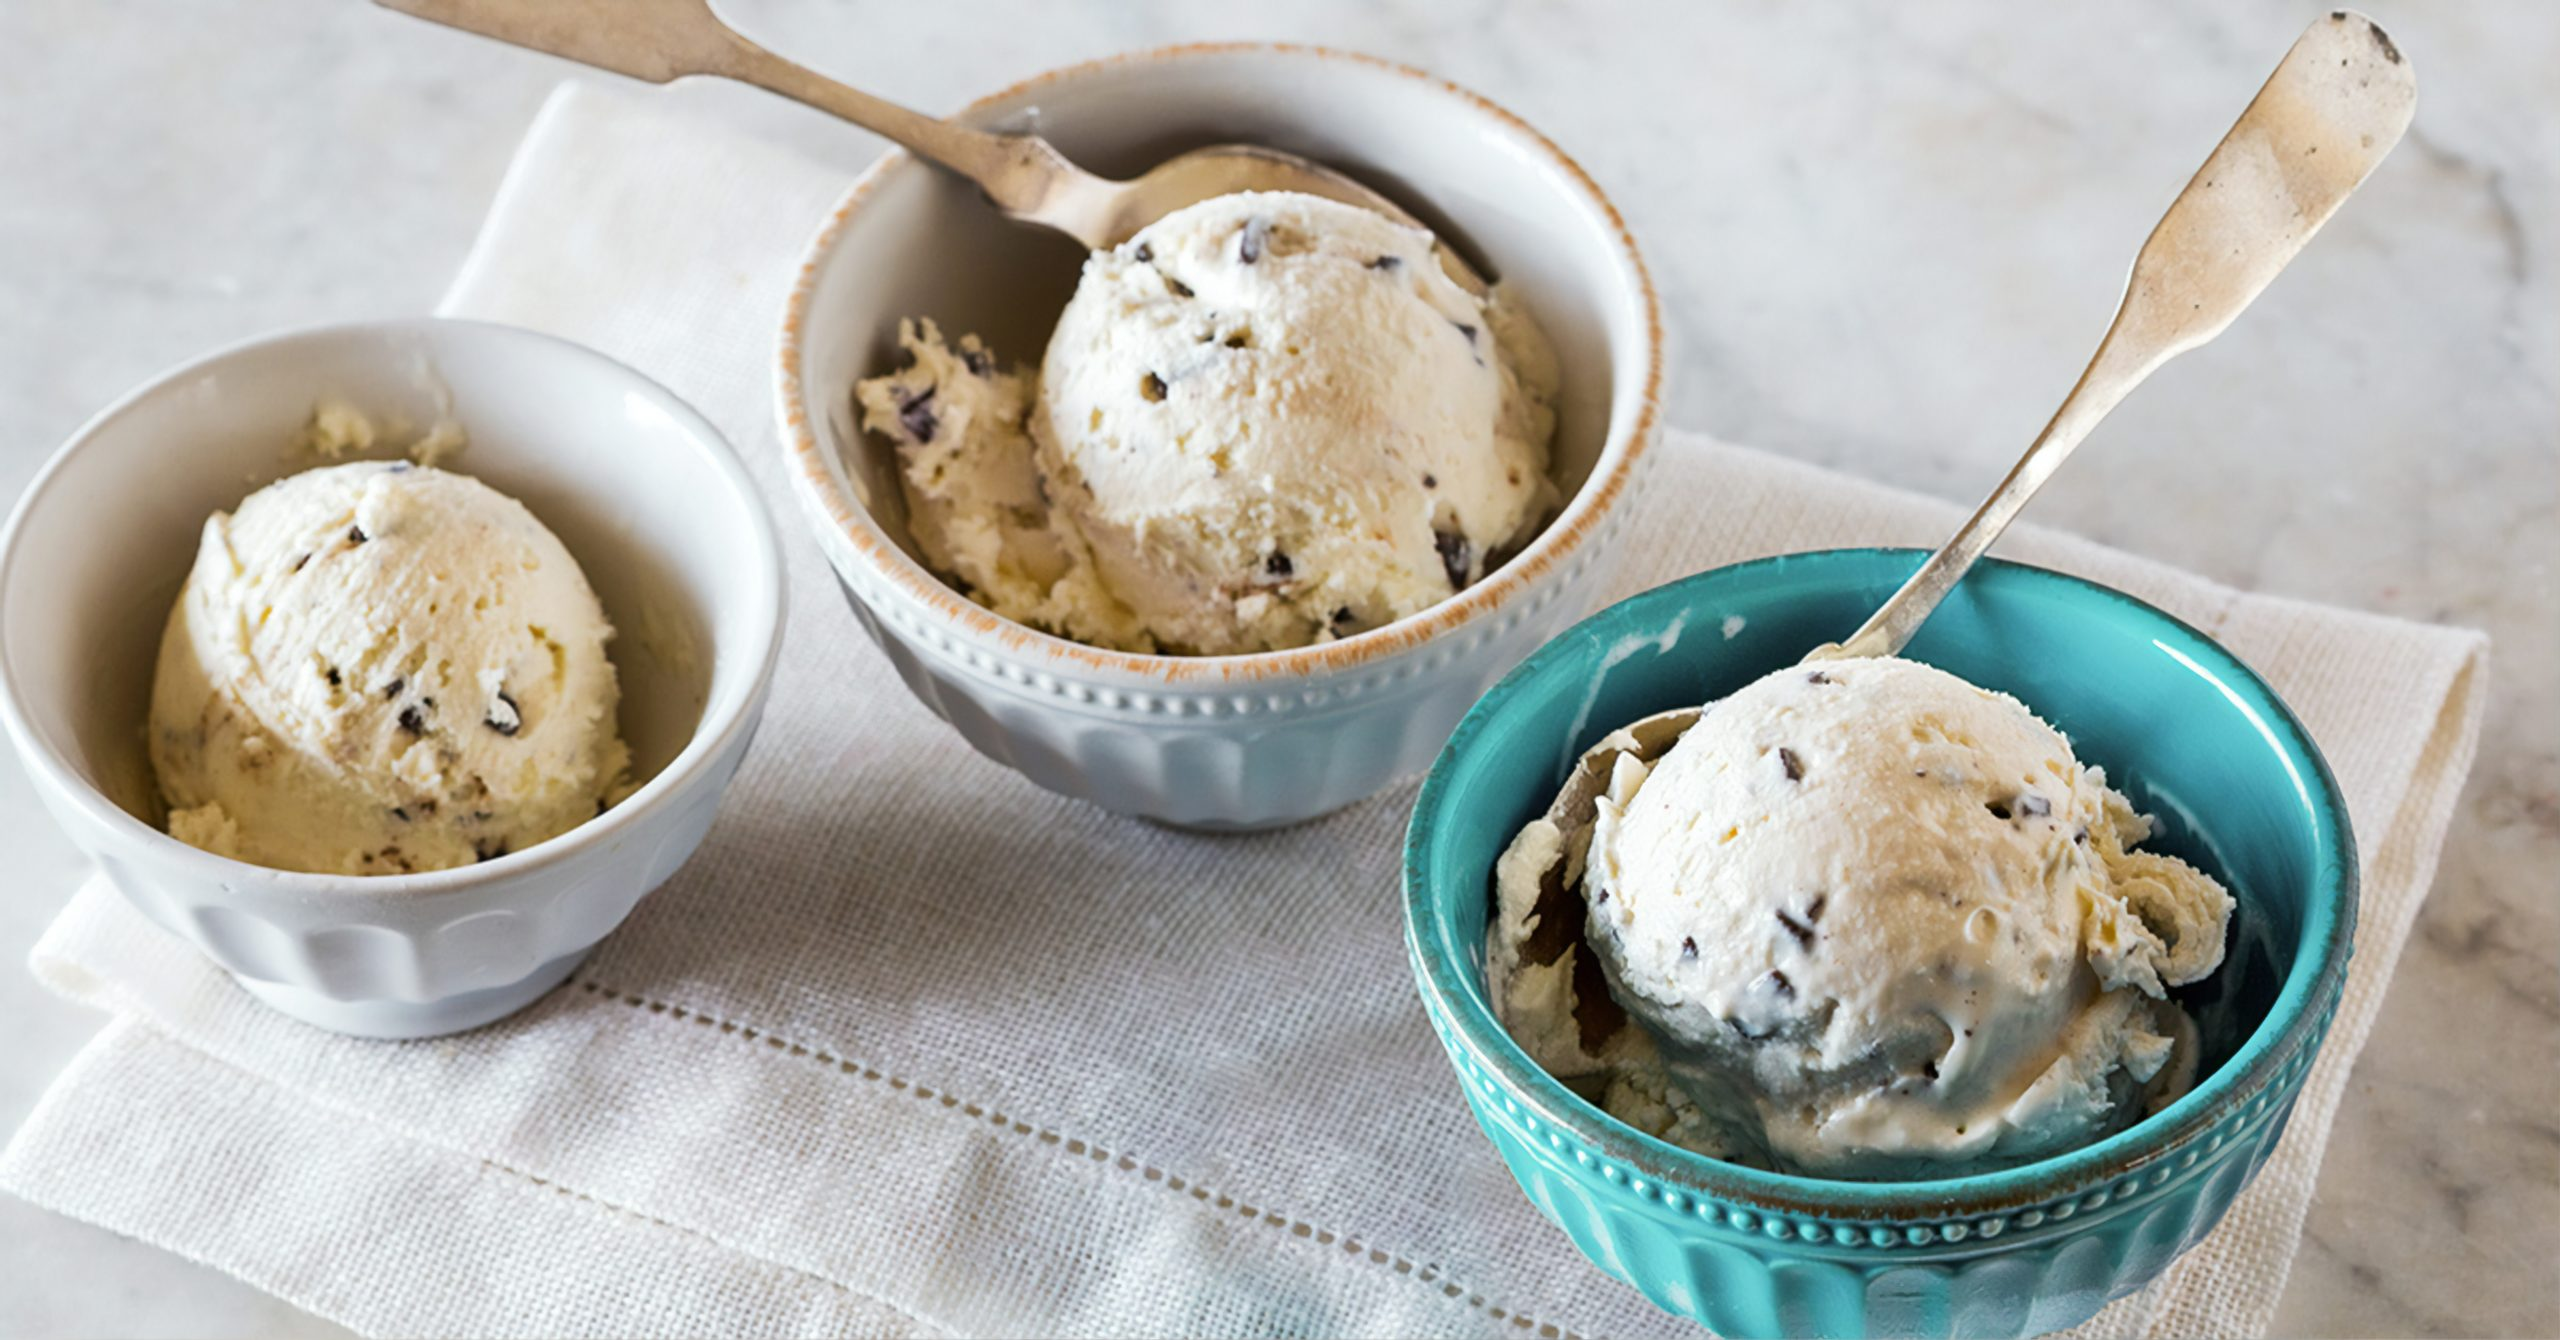 Ice cream in several bowls.